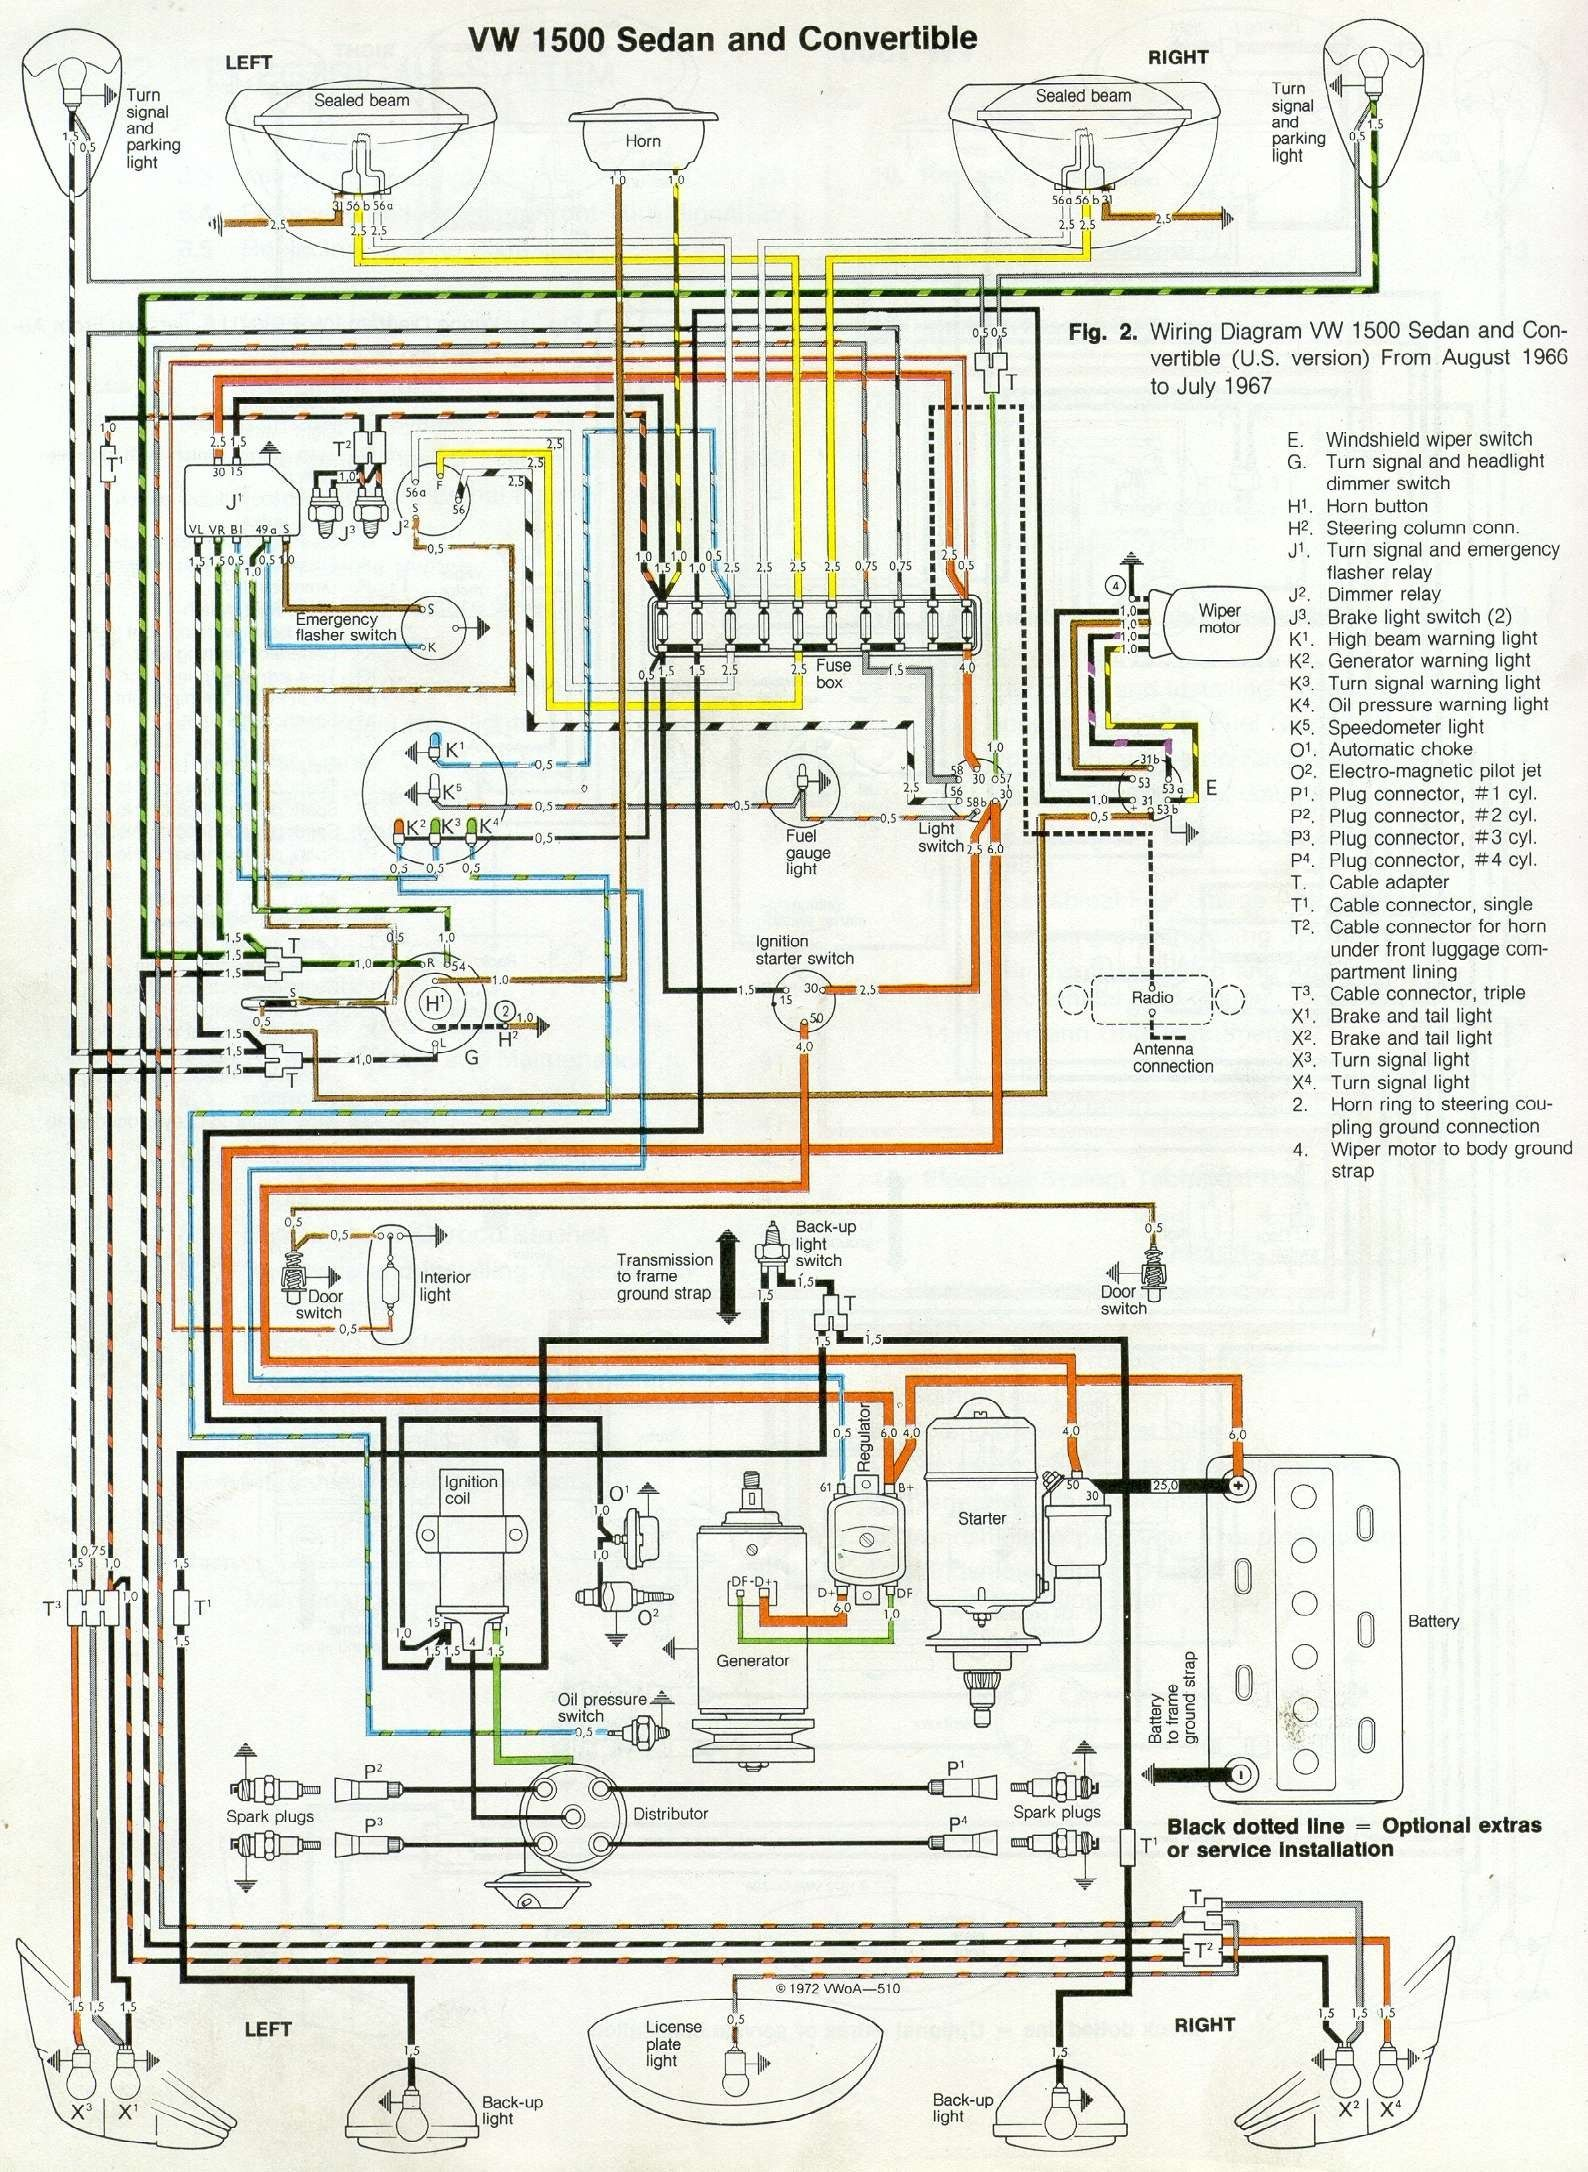 67 vw beetle wiring diagram wiring diagram blog the 1966 volkswagen beetle headlight switch wiring this diagram [ 1588 x 2172 Pixel ]